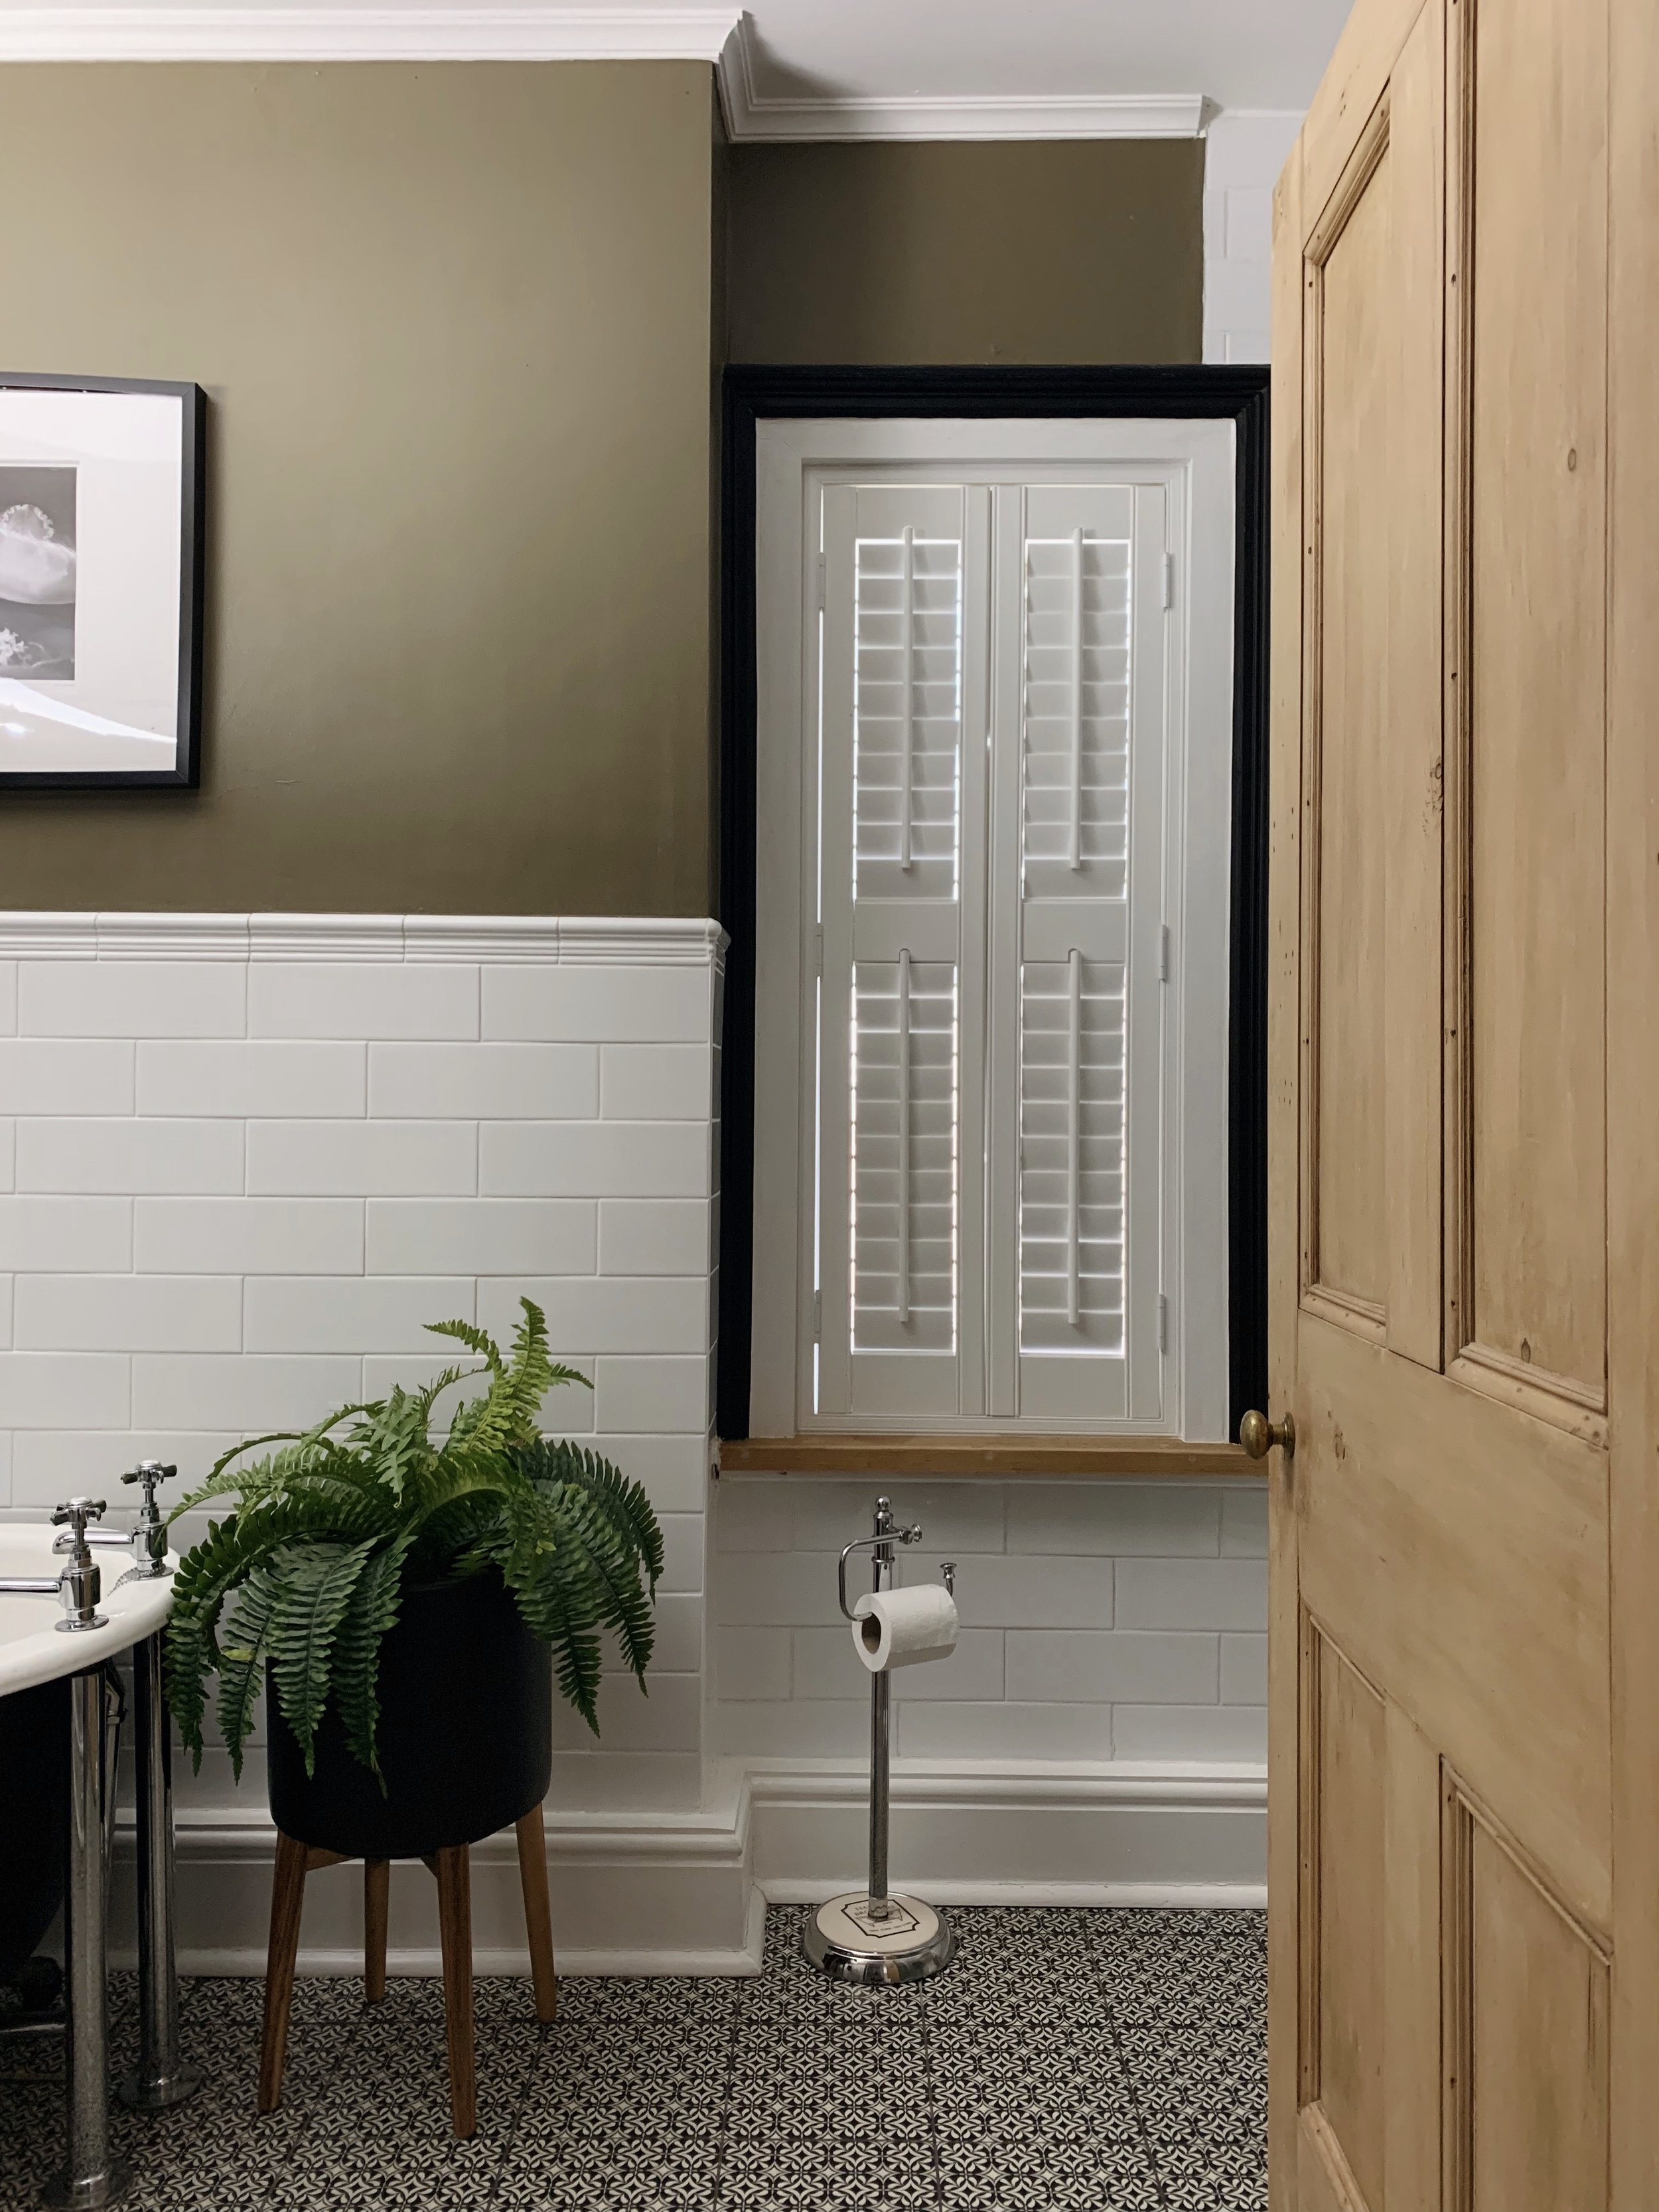 Our fitted bathroom shutters from 247 Blinds